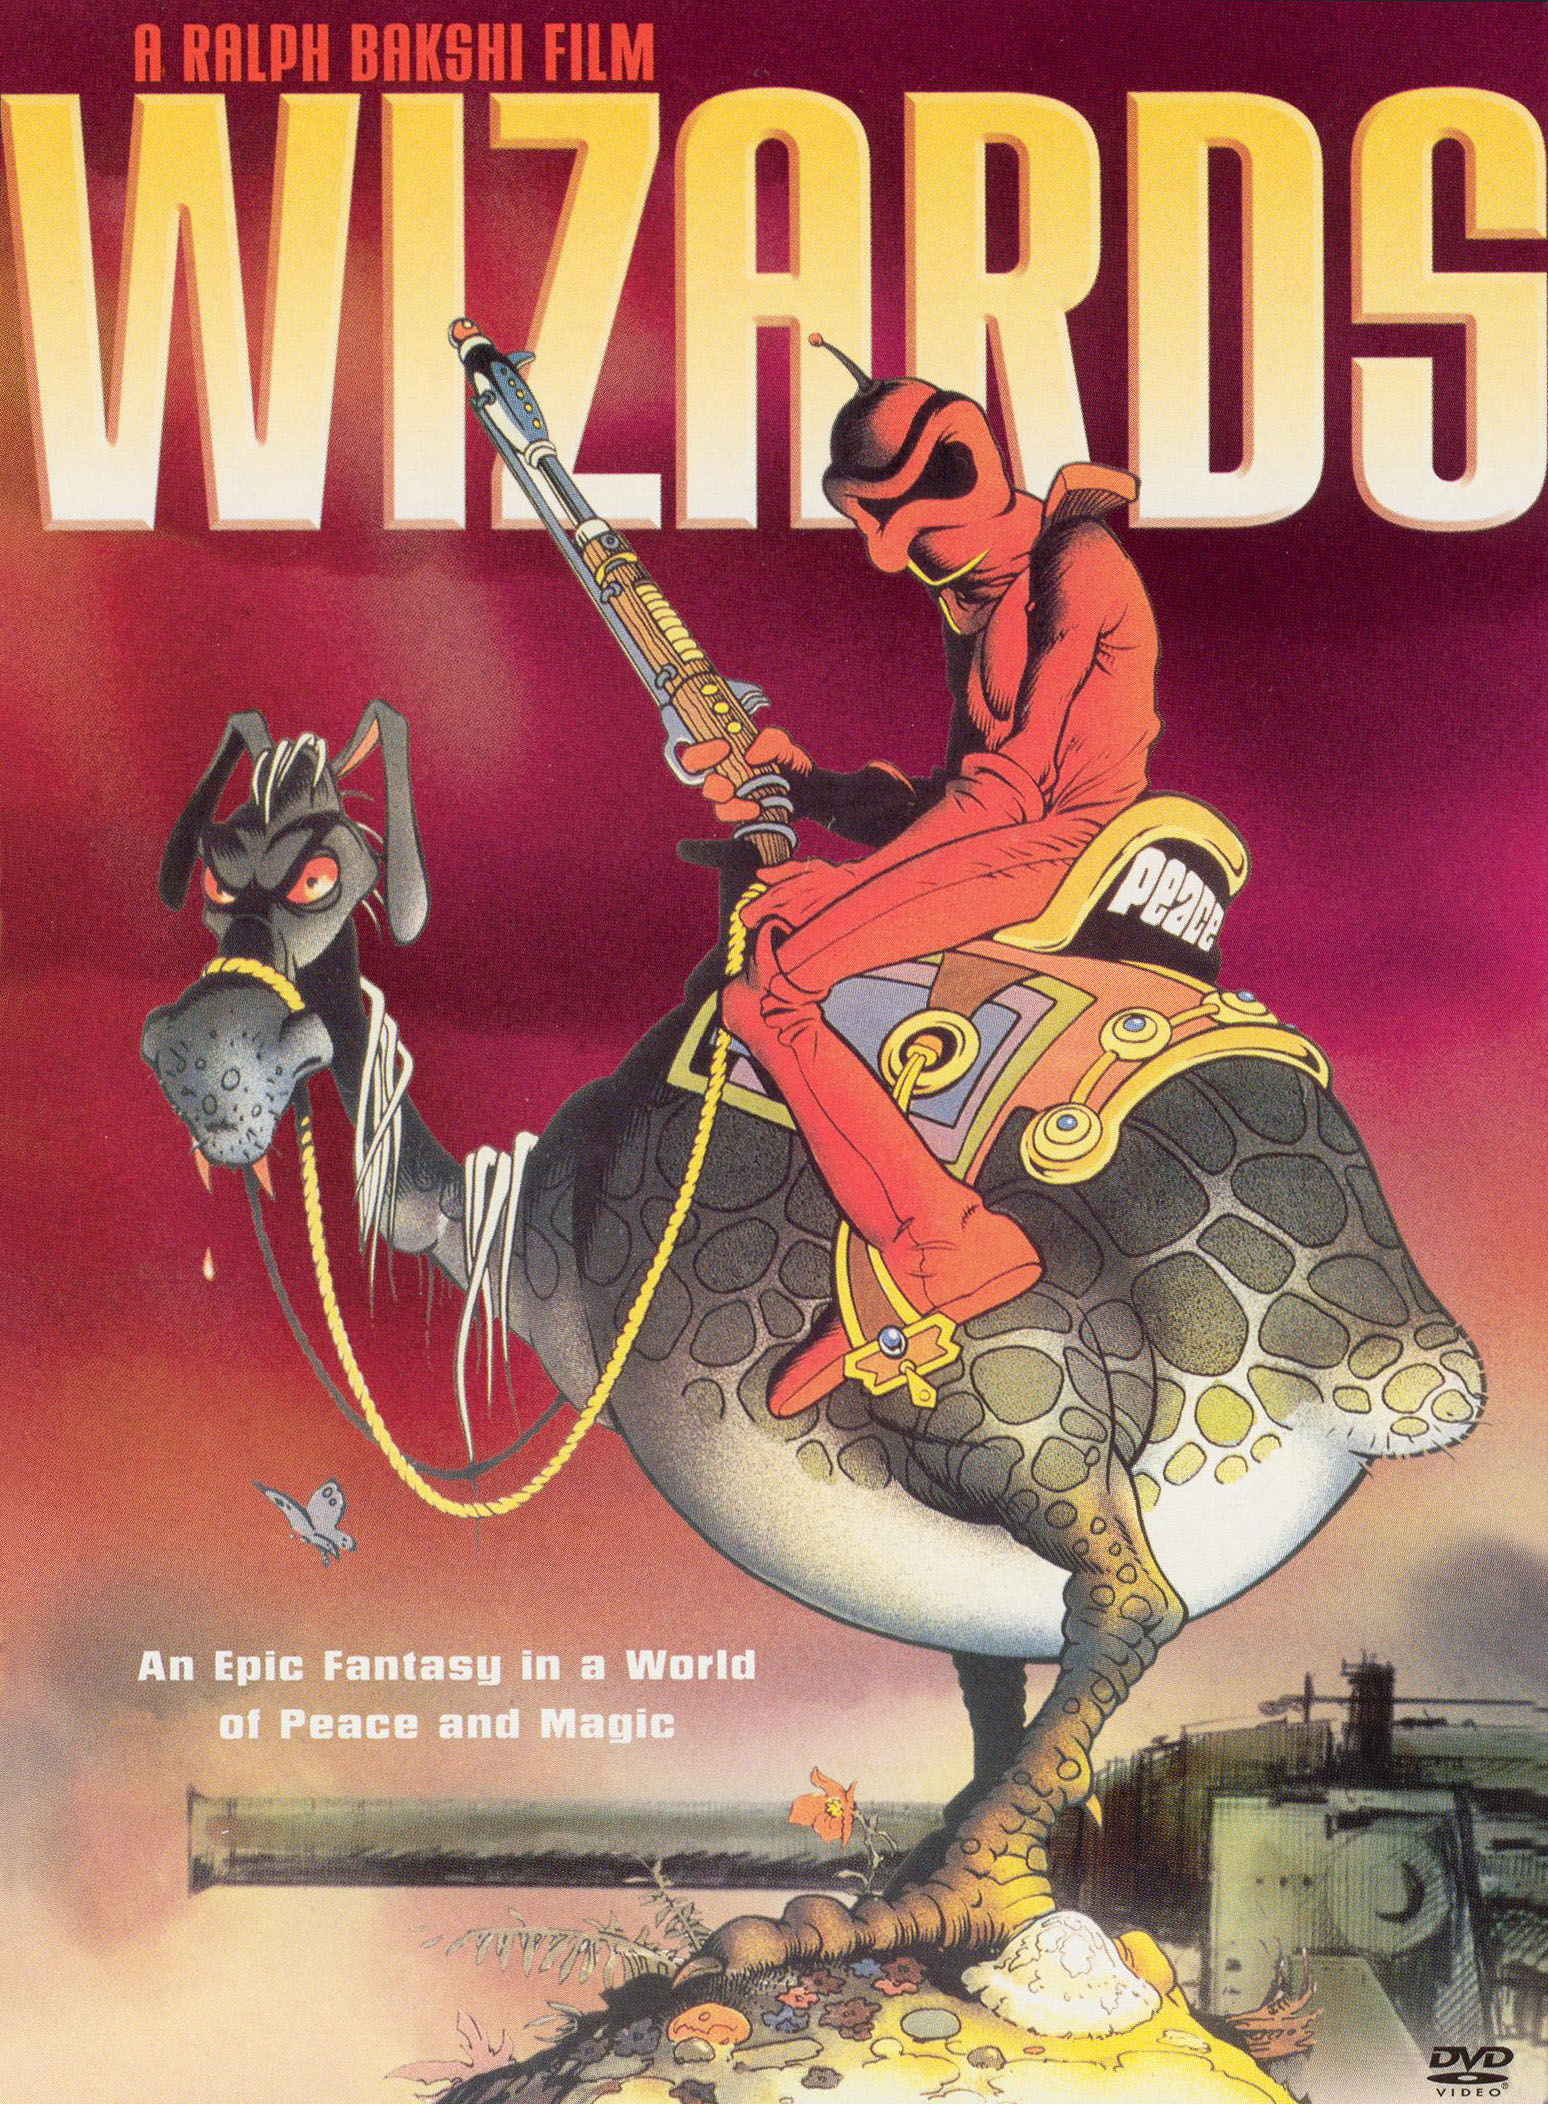 Wizards (1977) Main Poster